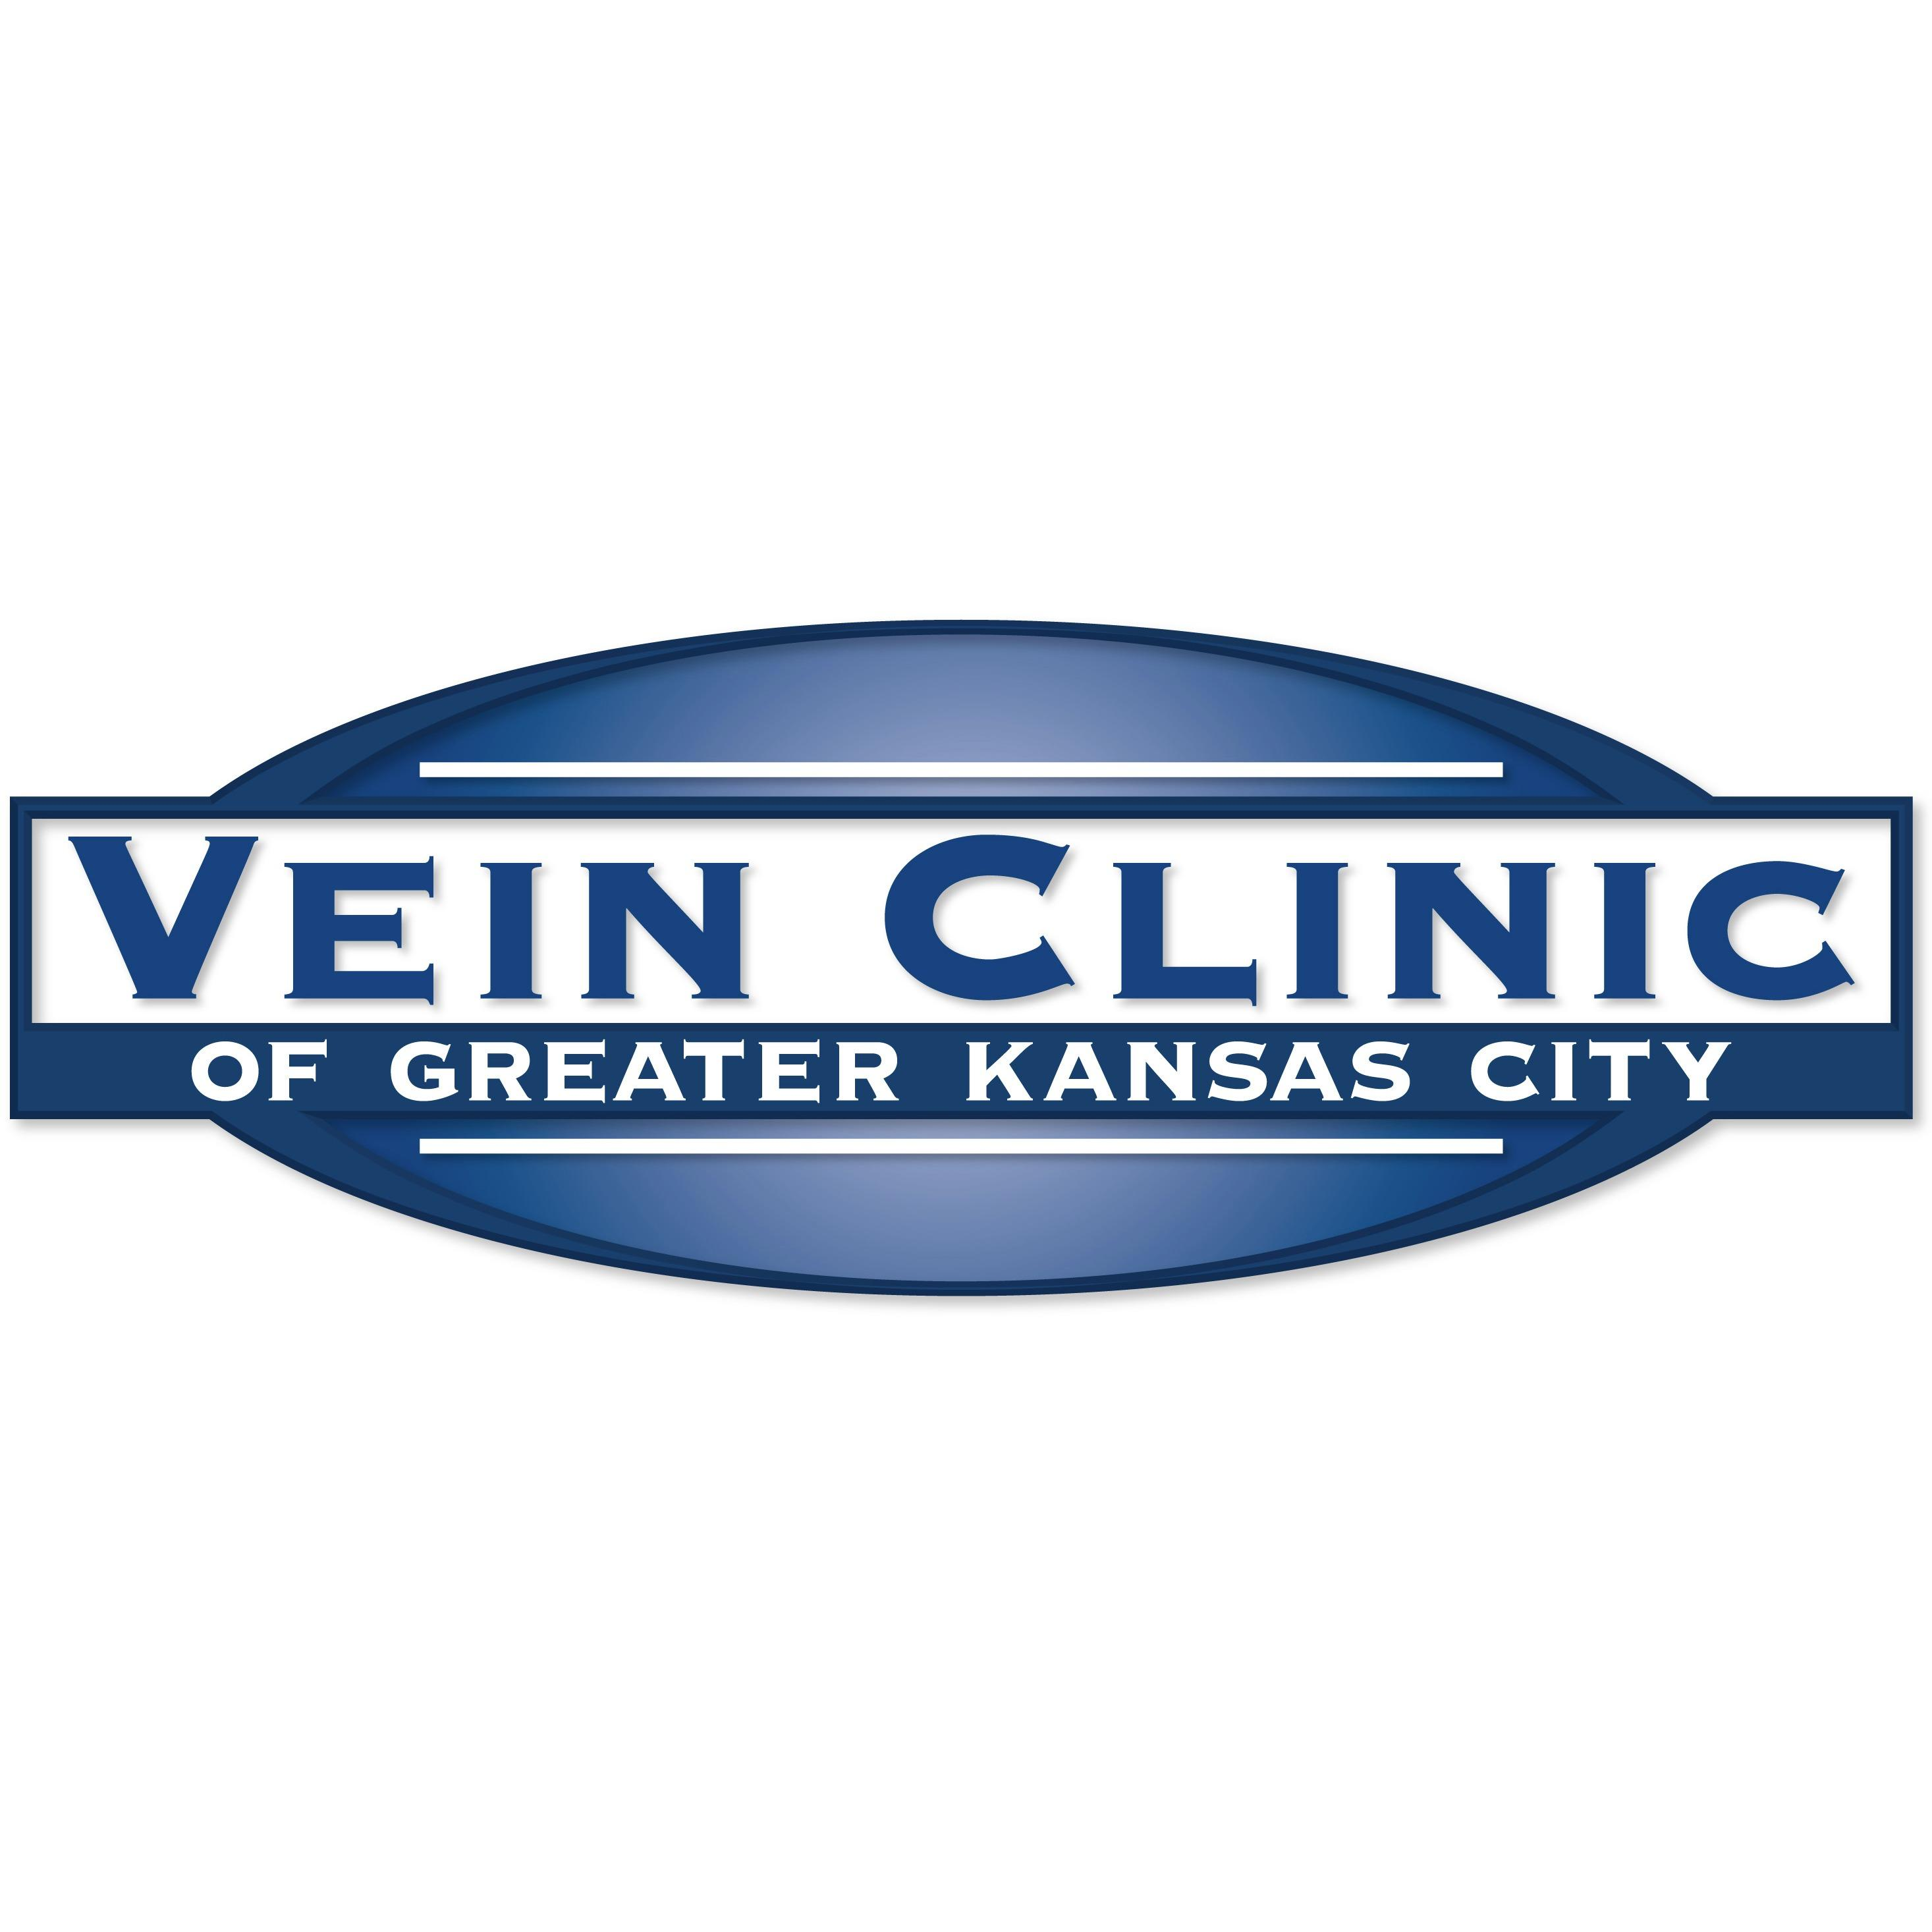 Vein Clinic of Greater Kansas City